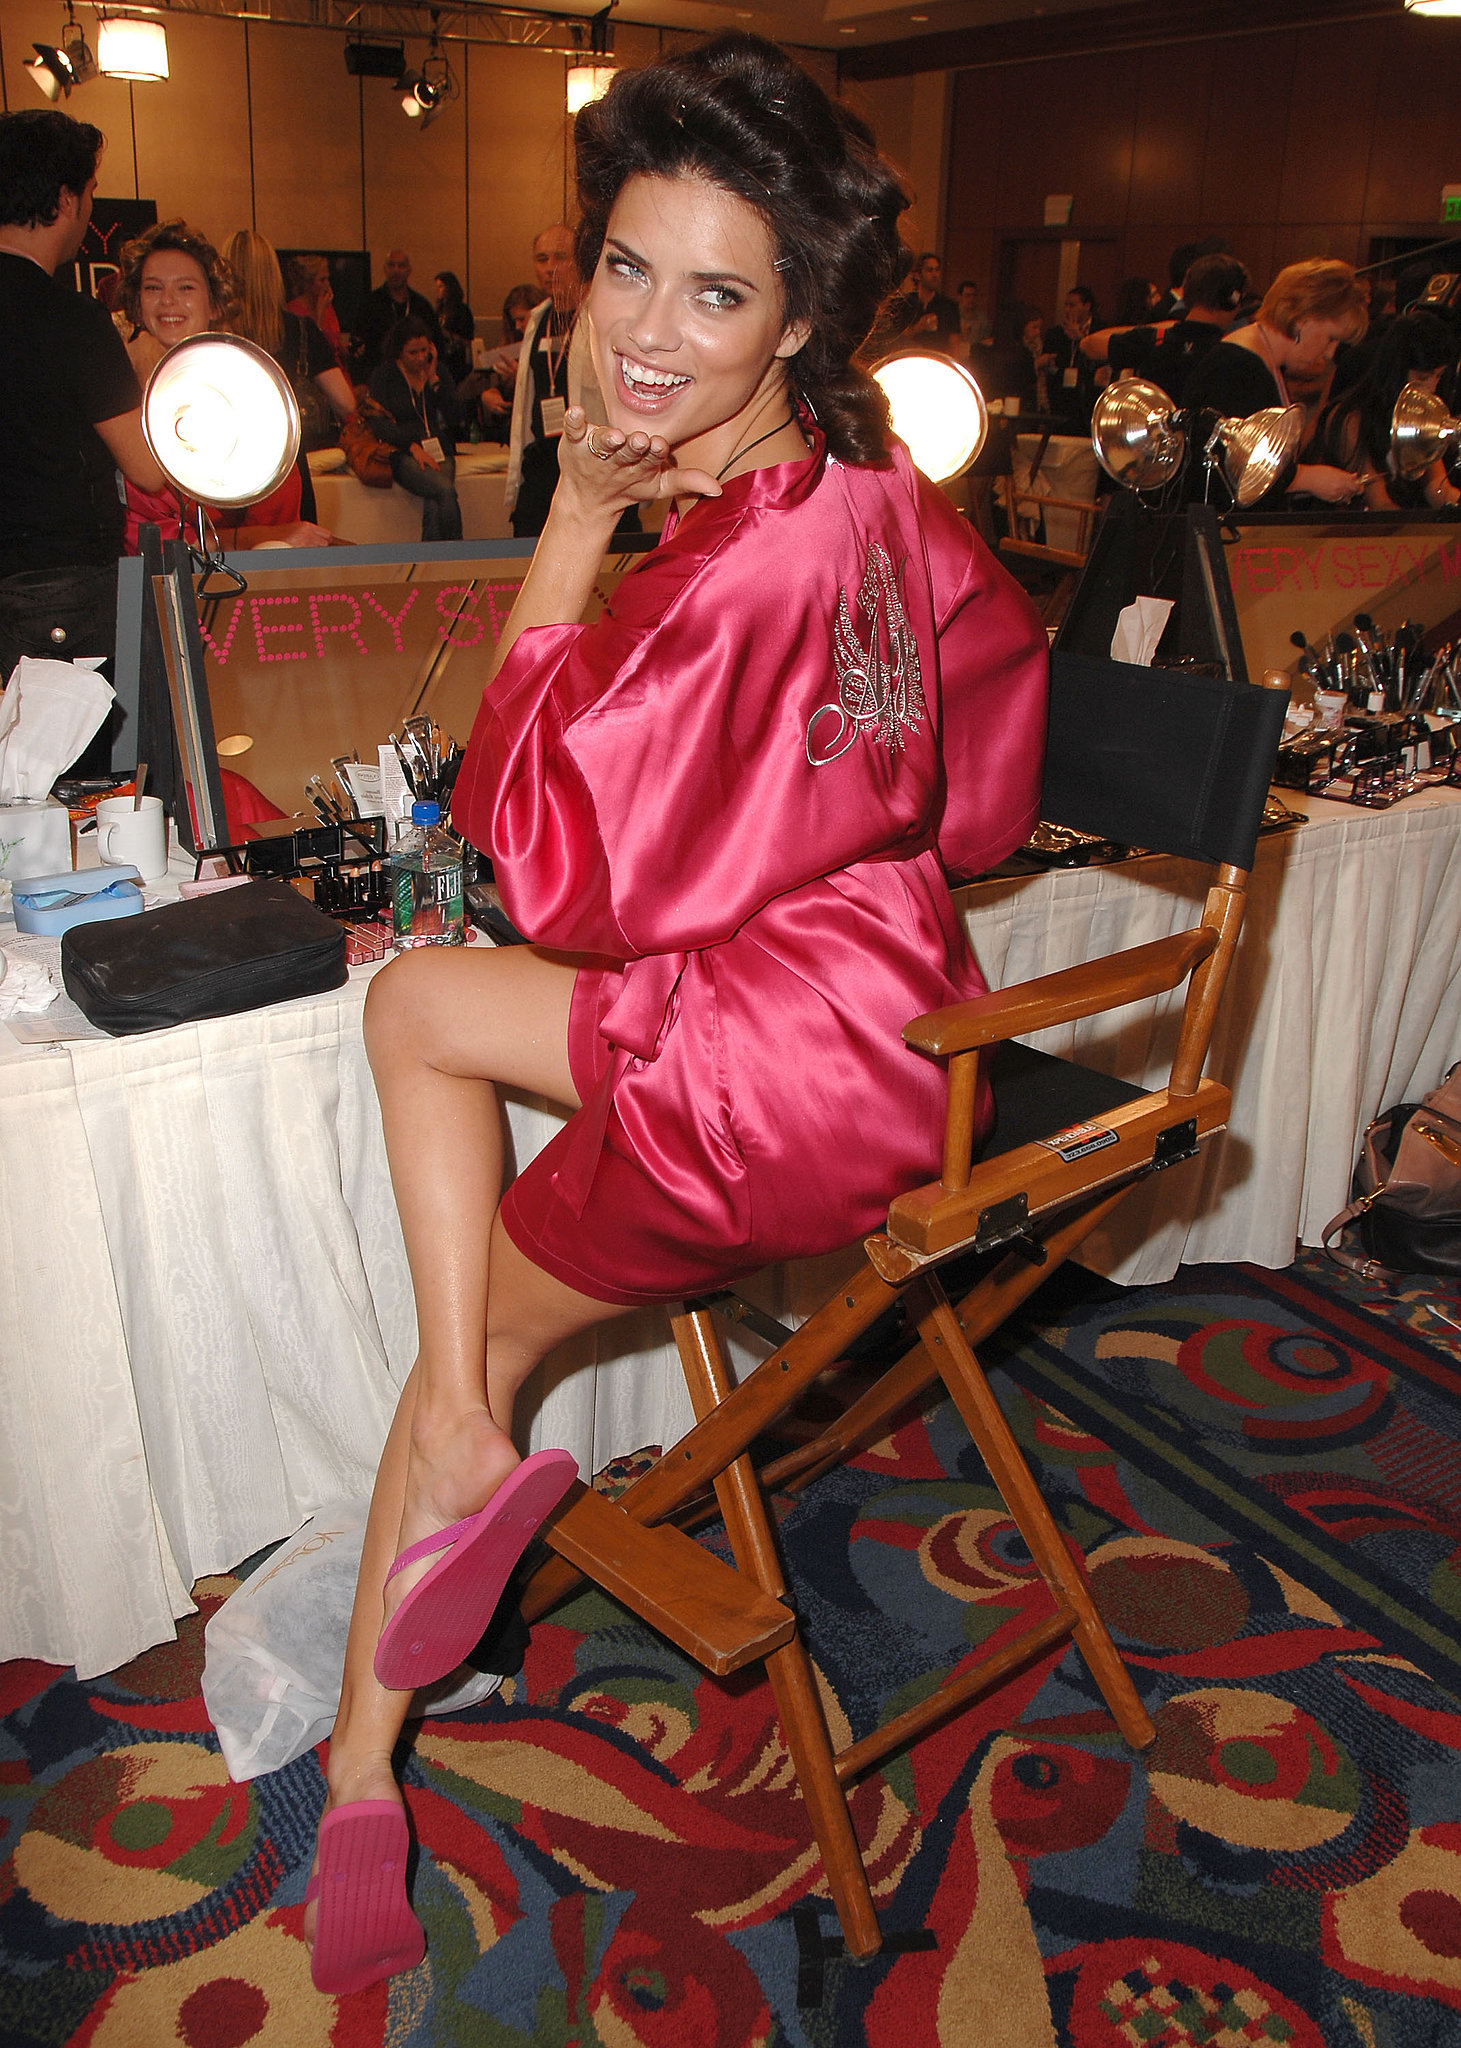 Adriana posed in her makeup stage backstage at the 2007 show.